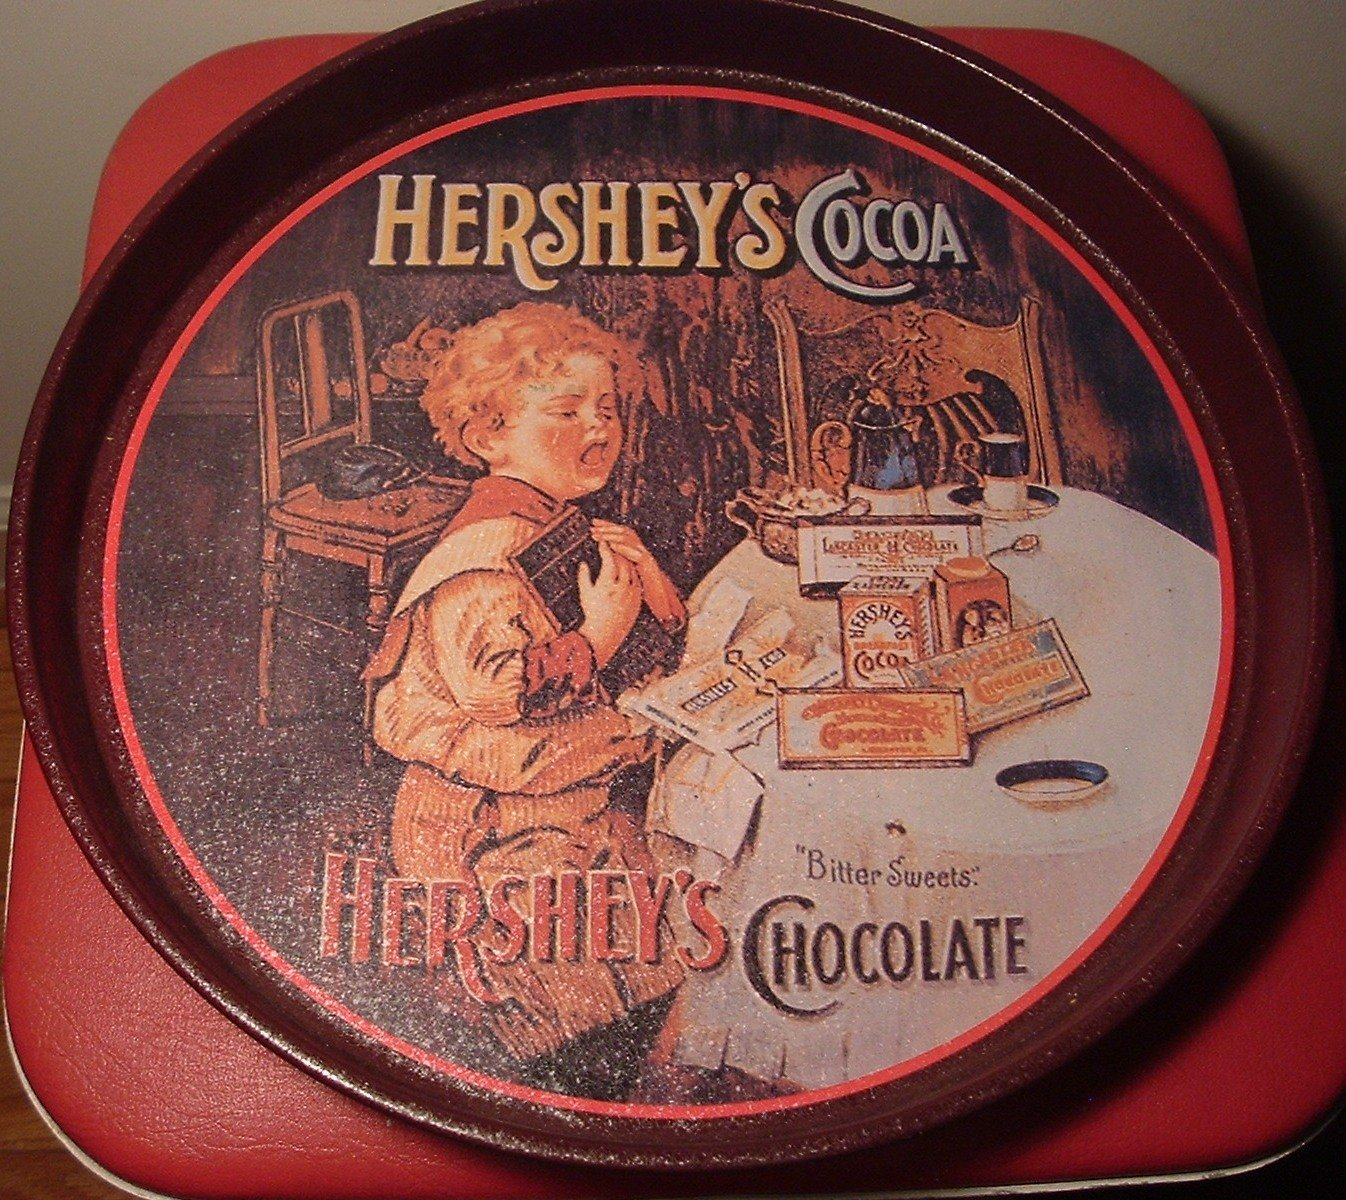 VINTAGE LOOK HERSHEY'S COCOA TIN TRAY BY BRISTOLWARE